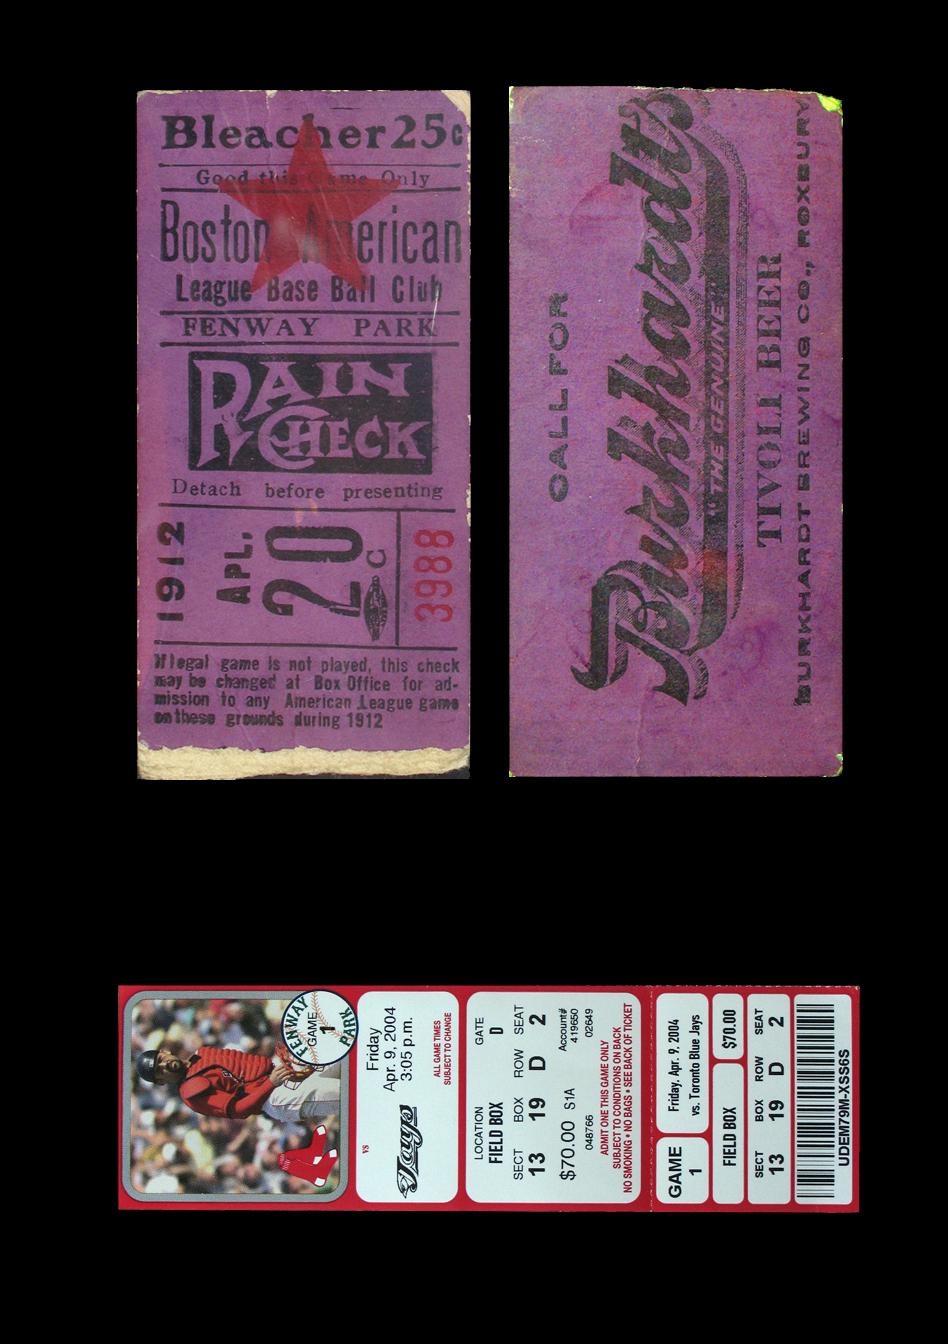 TICKETSTUBS REV